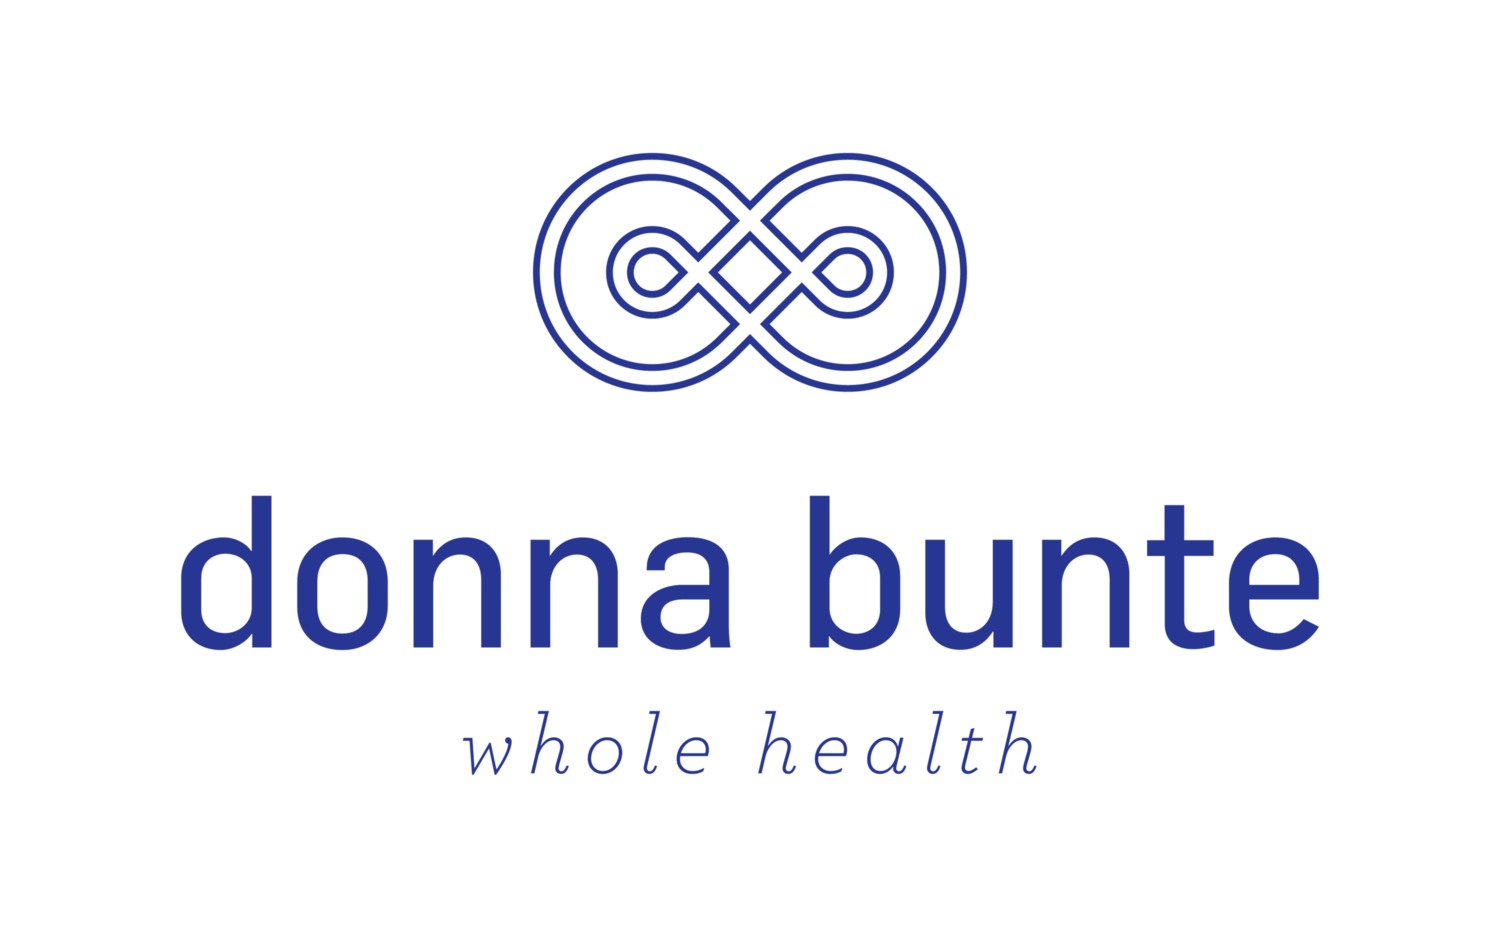 donna bunte          whole health